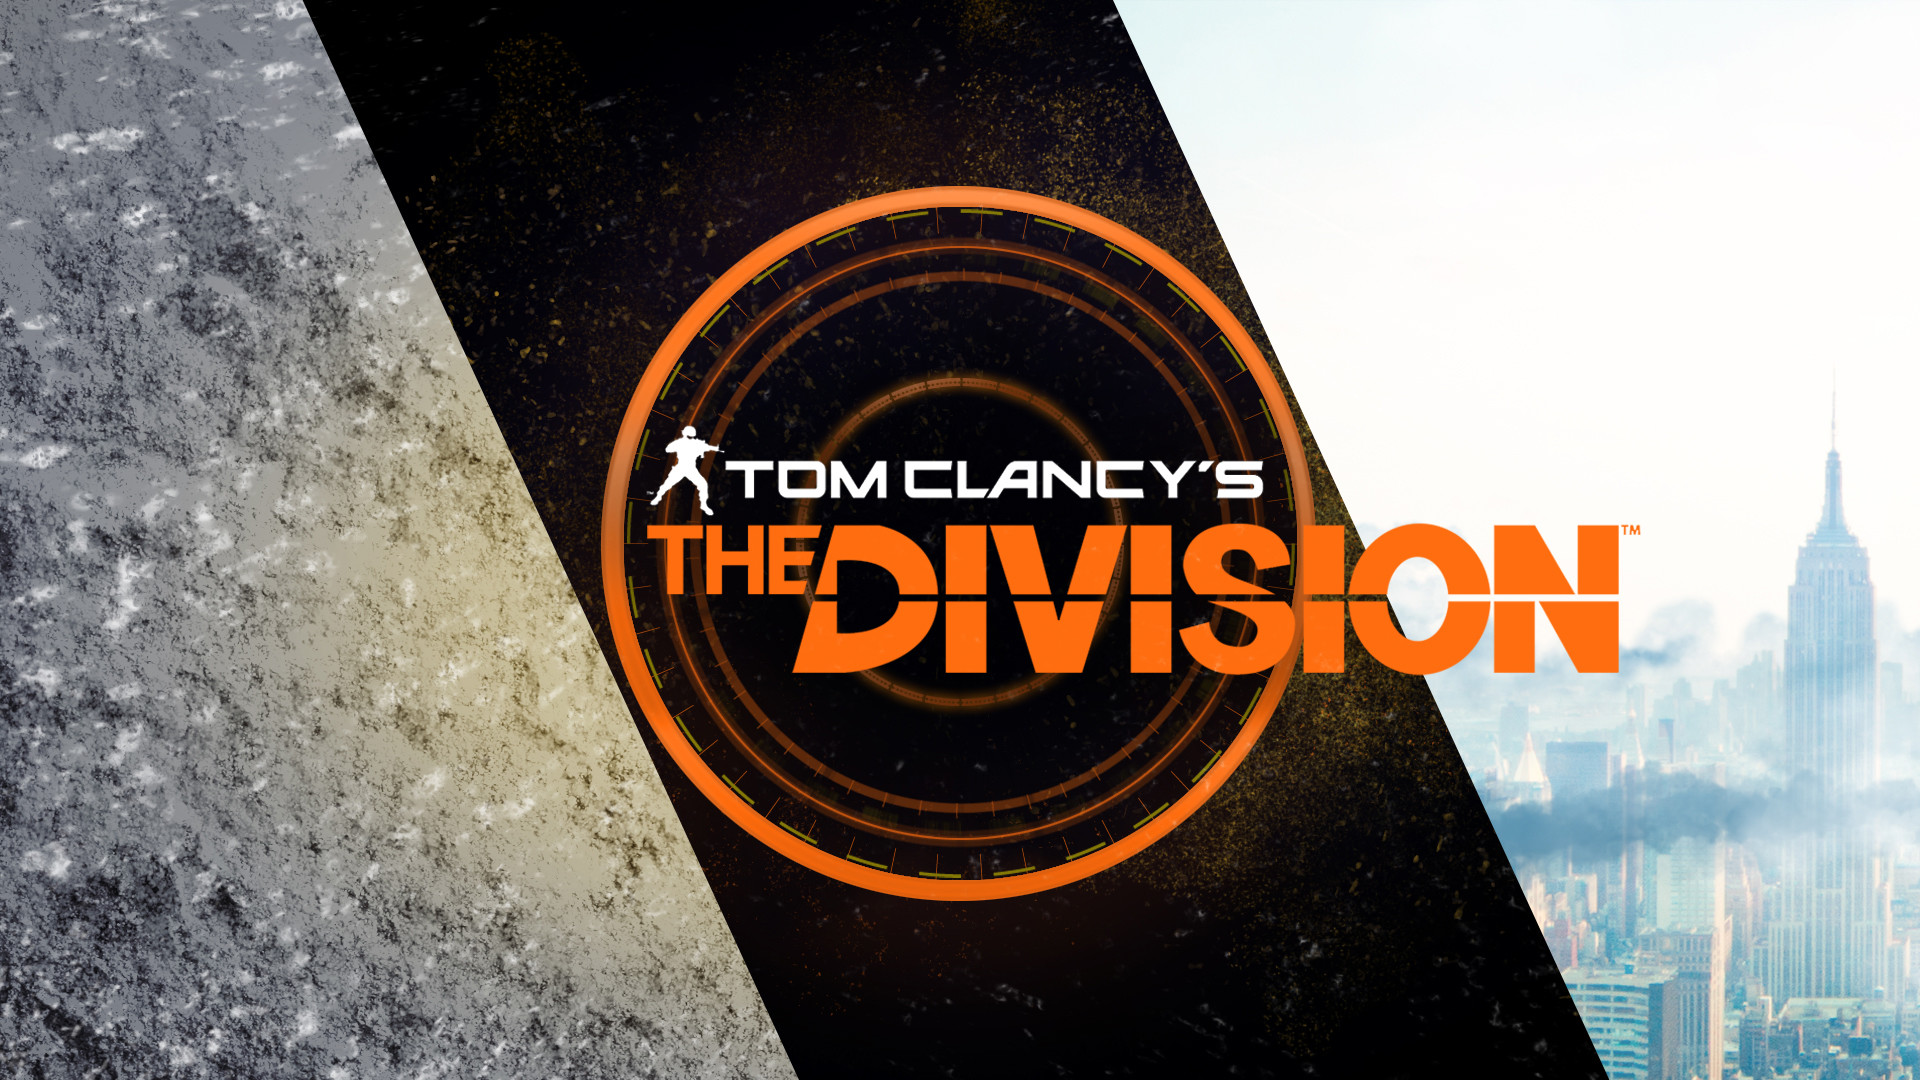 … Tom Clancy's The Division Wallpaper Pack by ValencyGraphics